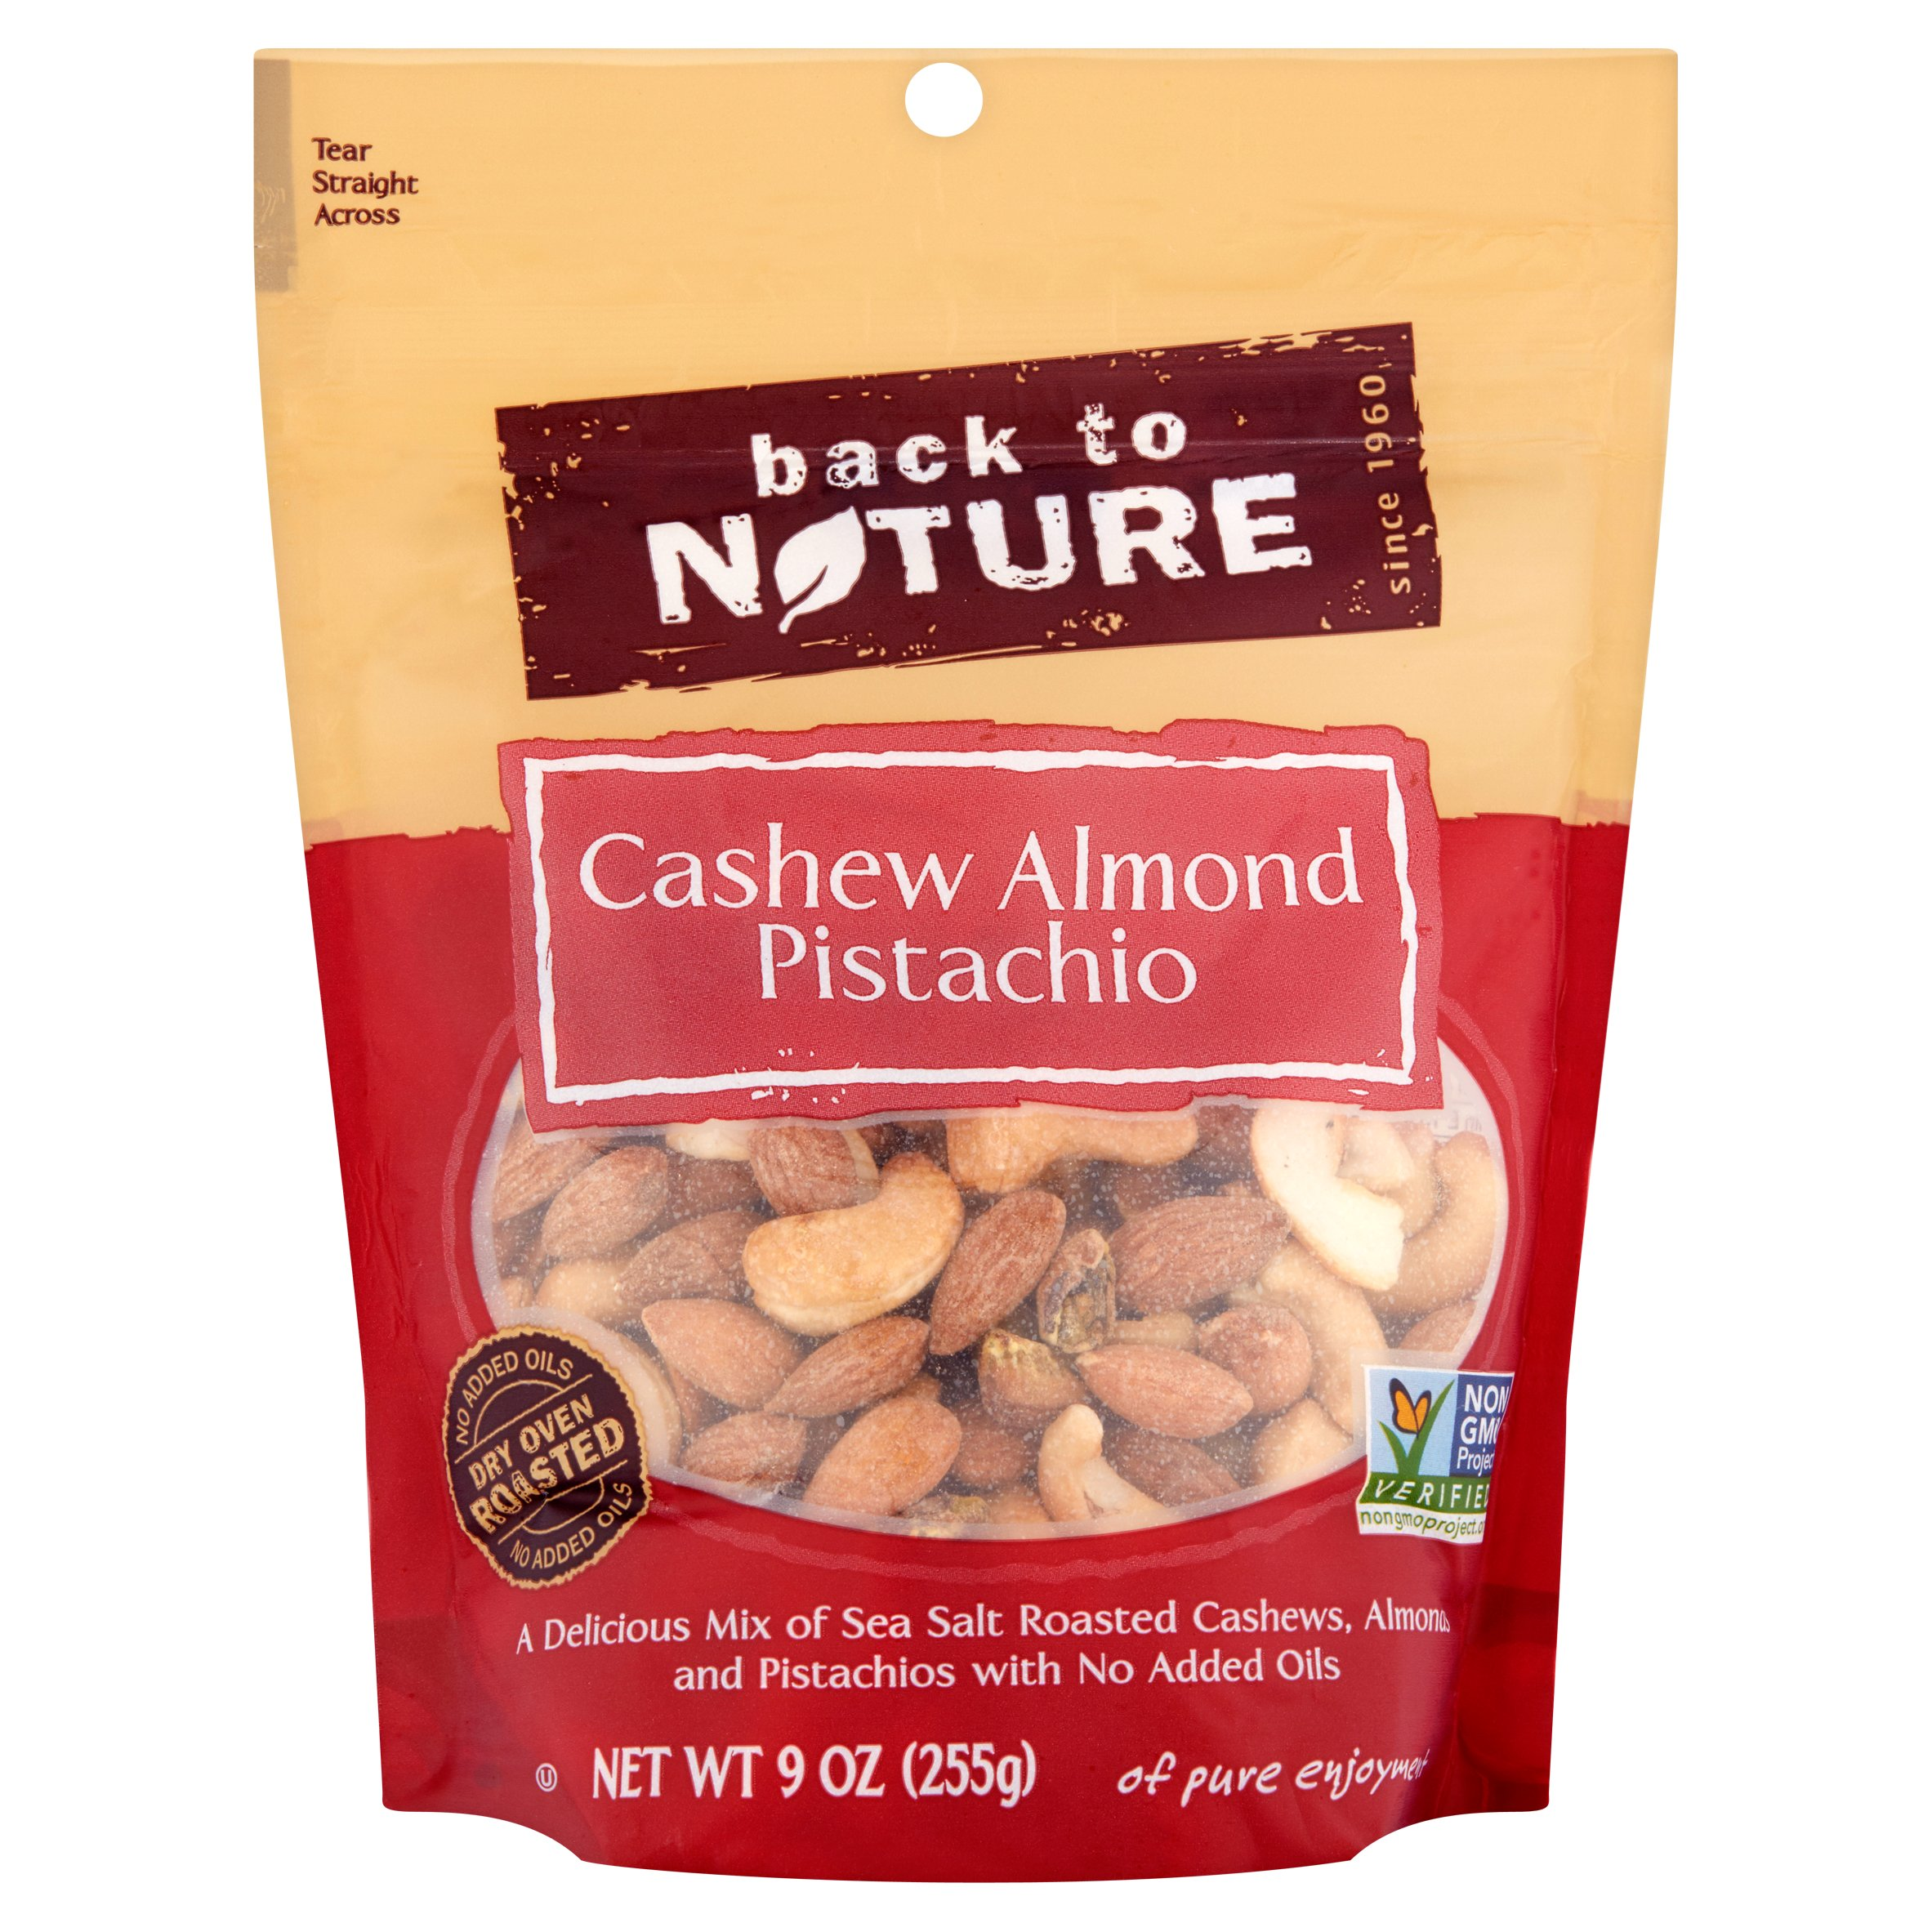 Back to Nature Cashew Almond Pistachio 9 oz by Back to Nature Foods Co., LLC